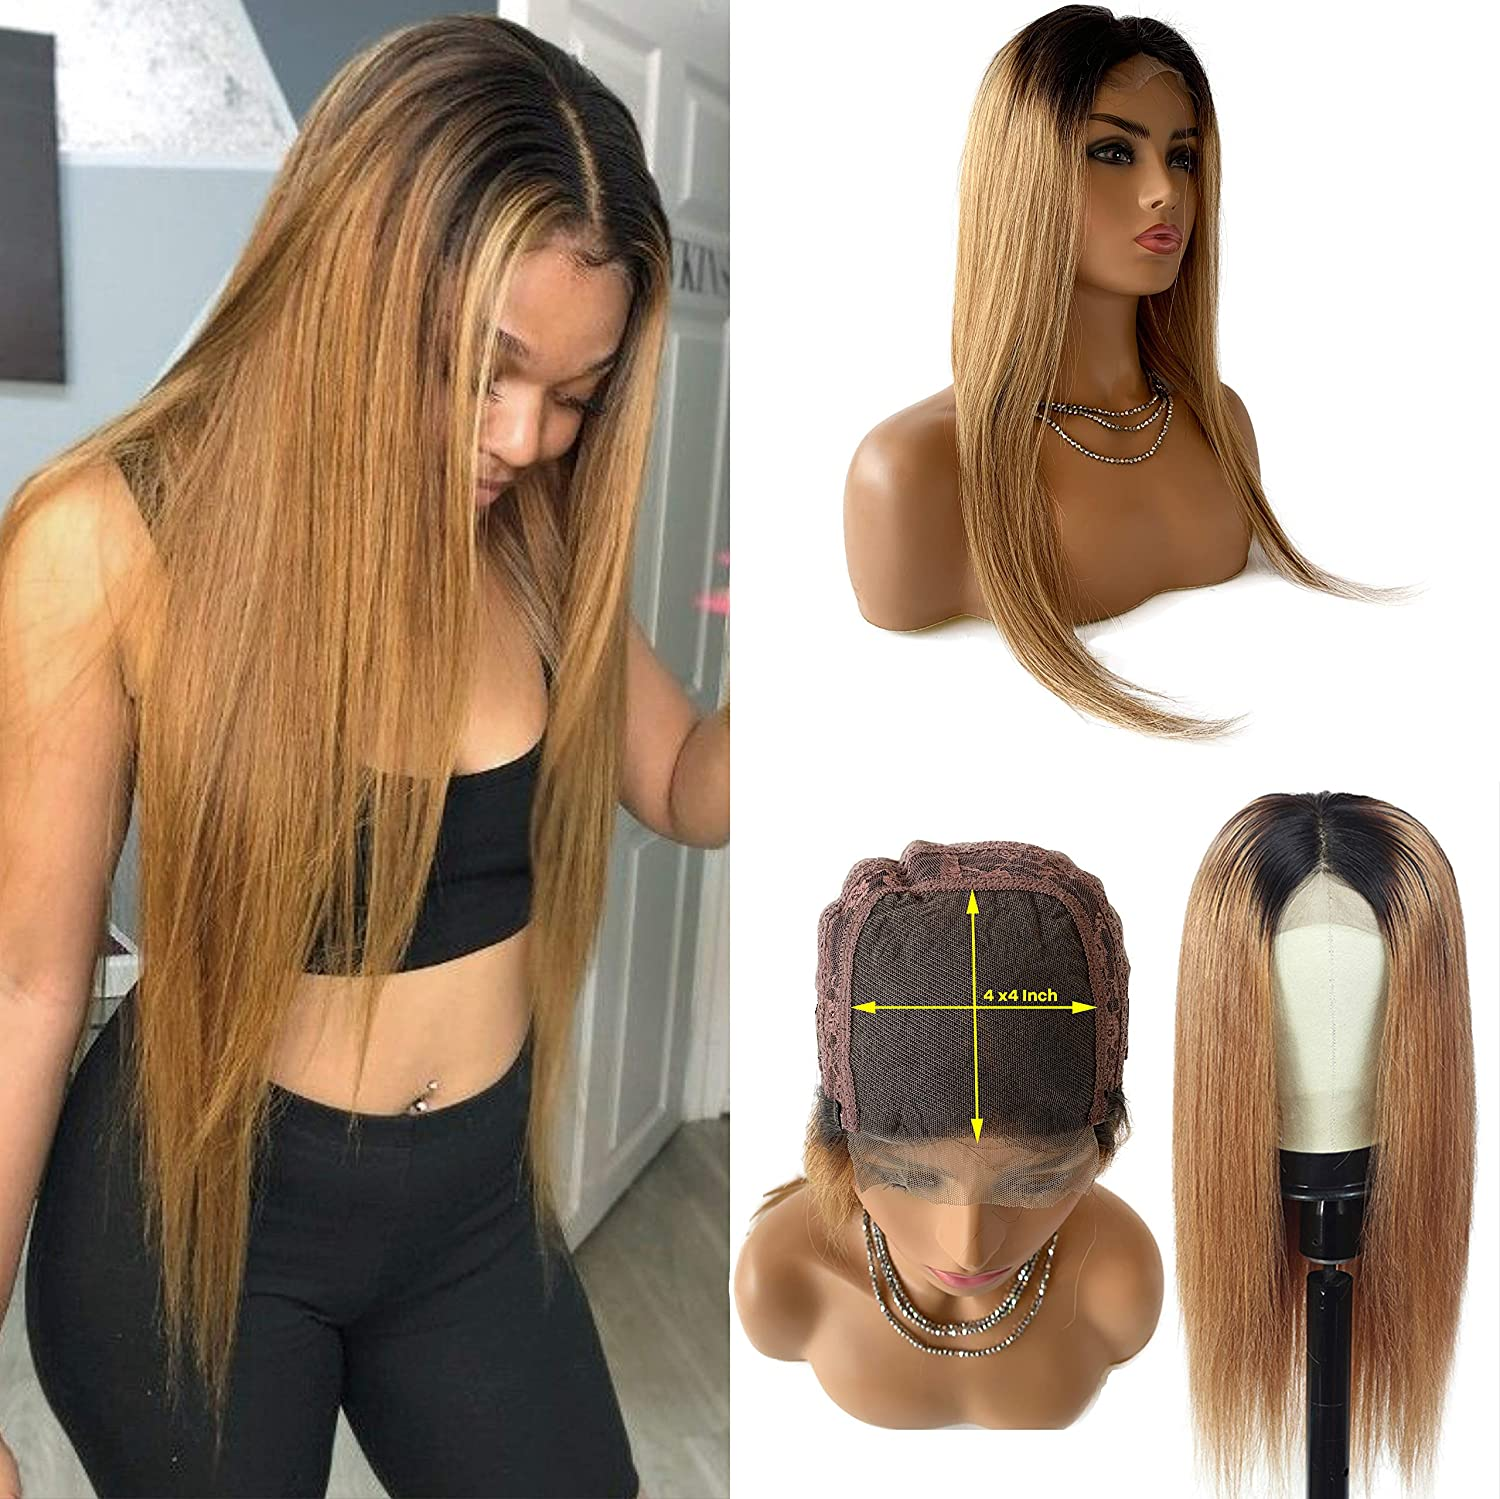 Brazilian Human Hair Wig Ombre Blonde Wigs Ranking TOP7 Lace Frontal Str 1b27 New arrival